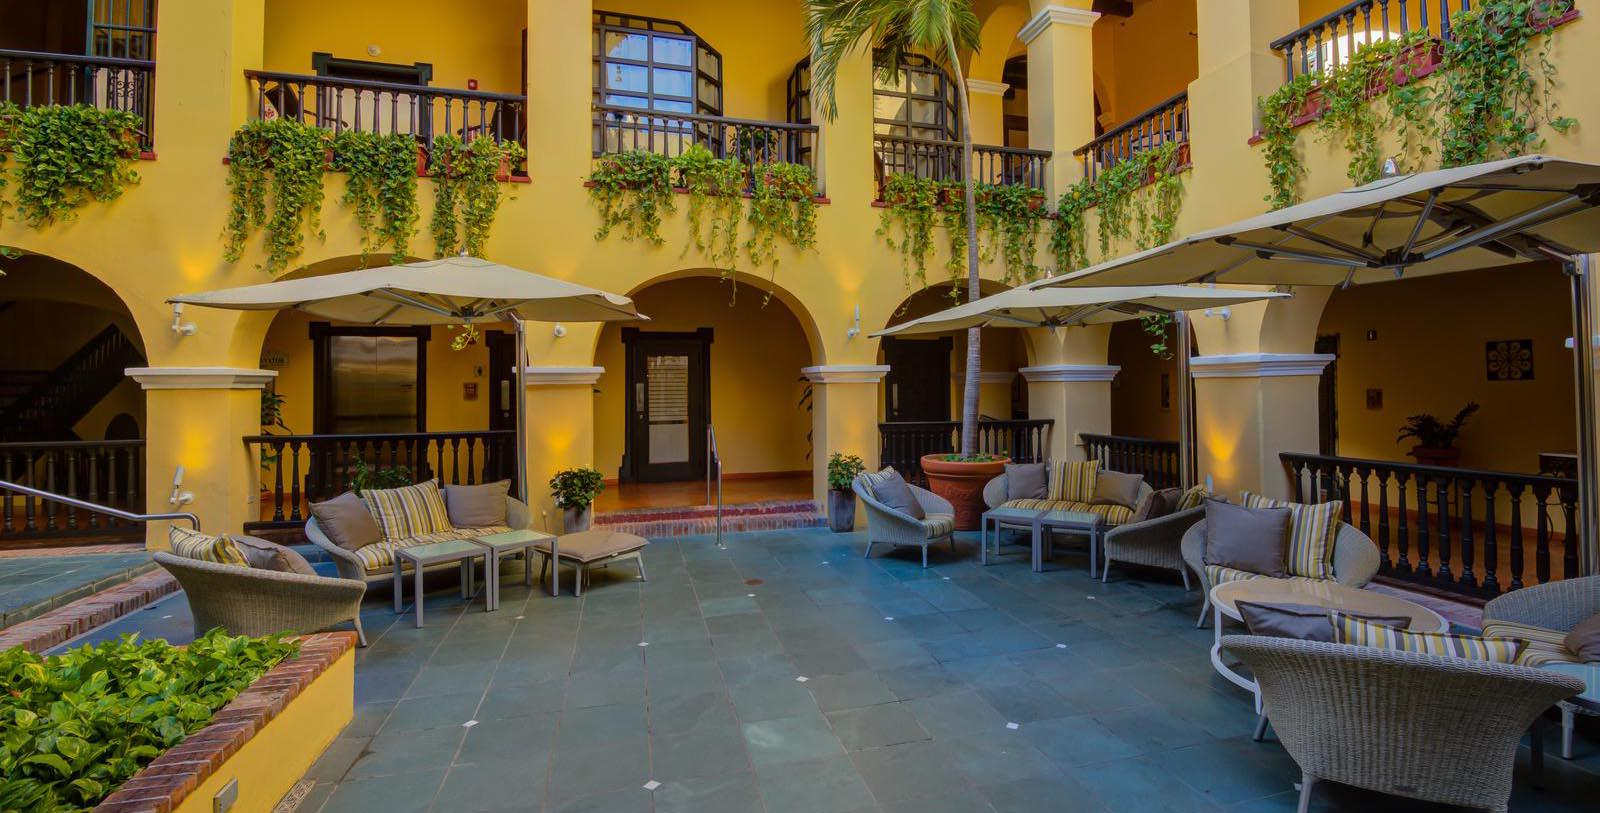 Image of hotel exterior courtyard at El Convento Hotel, 1948, Member of Historic Hotels of America, in San Juan, Puerto Rico, Overview